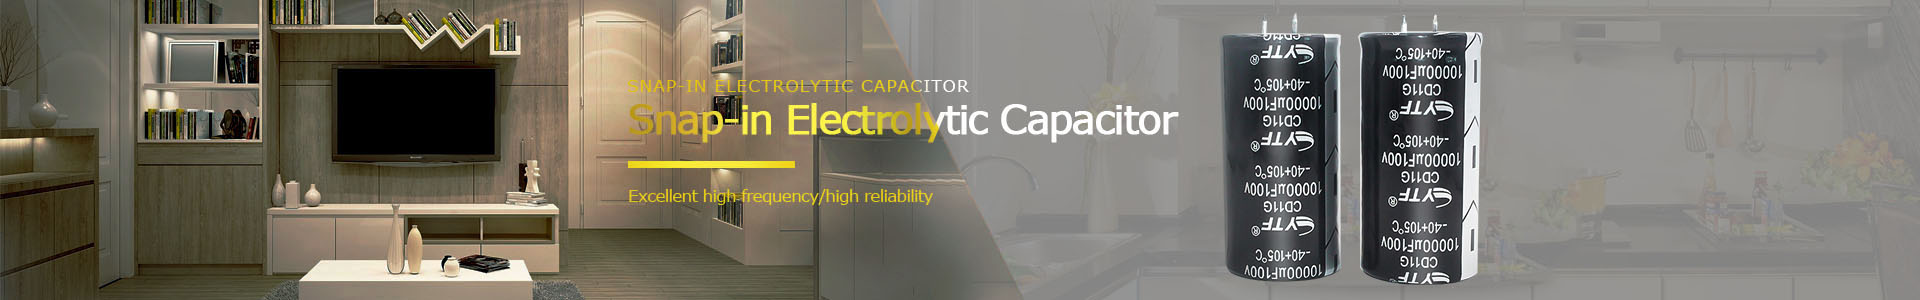 Factory price snap in capacitor 10000uf 80v 35x60mm for power supply - Snap-in Electrolytic Capacitor